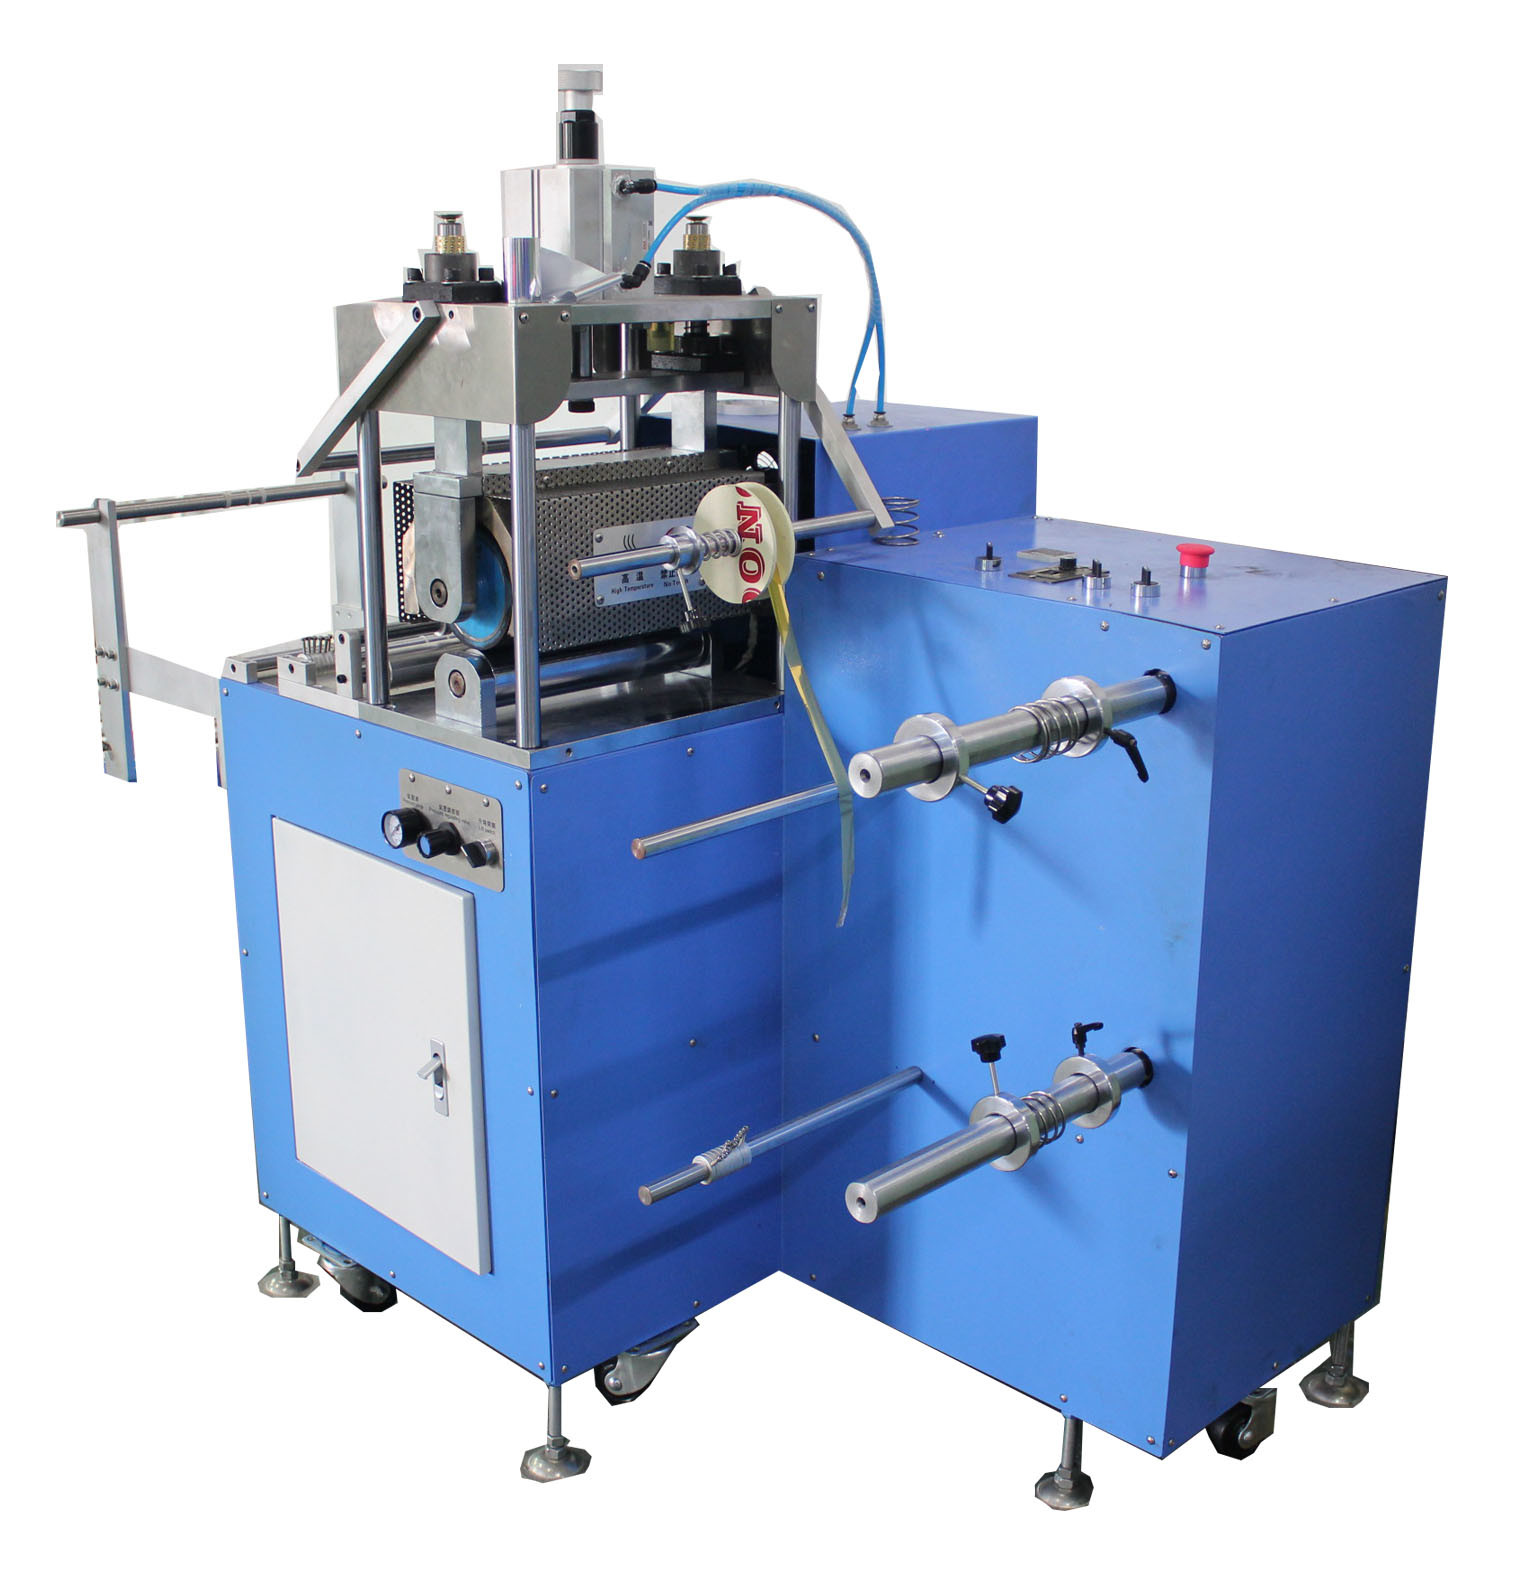 New Desig Hot Foil Stamping Machine Dps-3000s-F